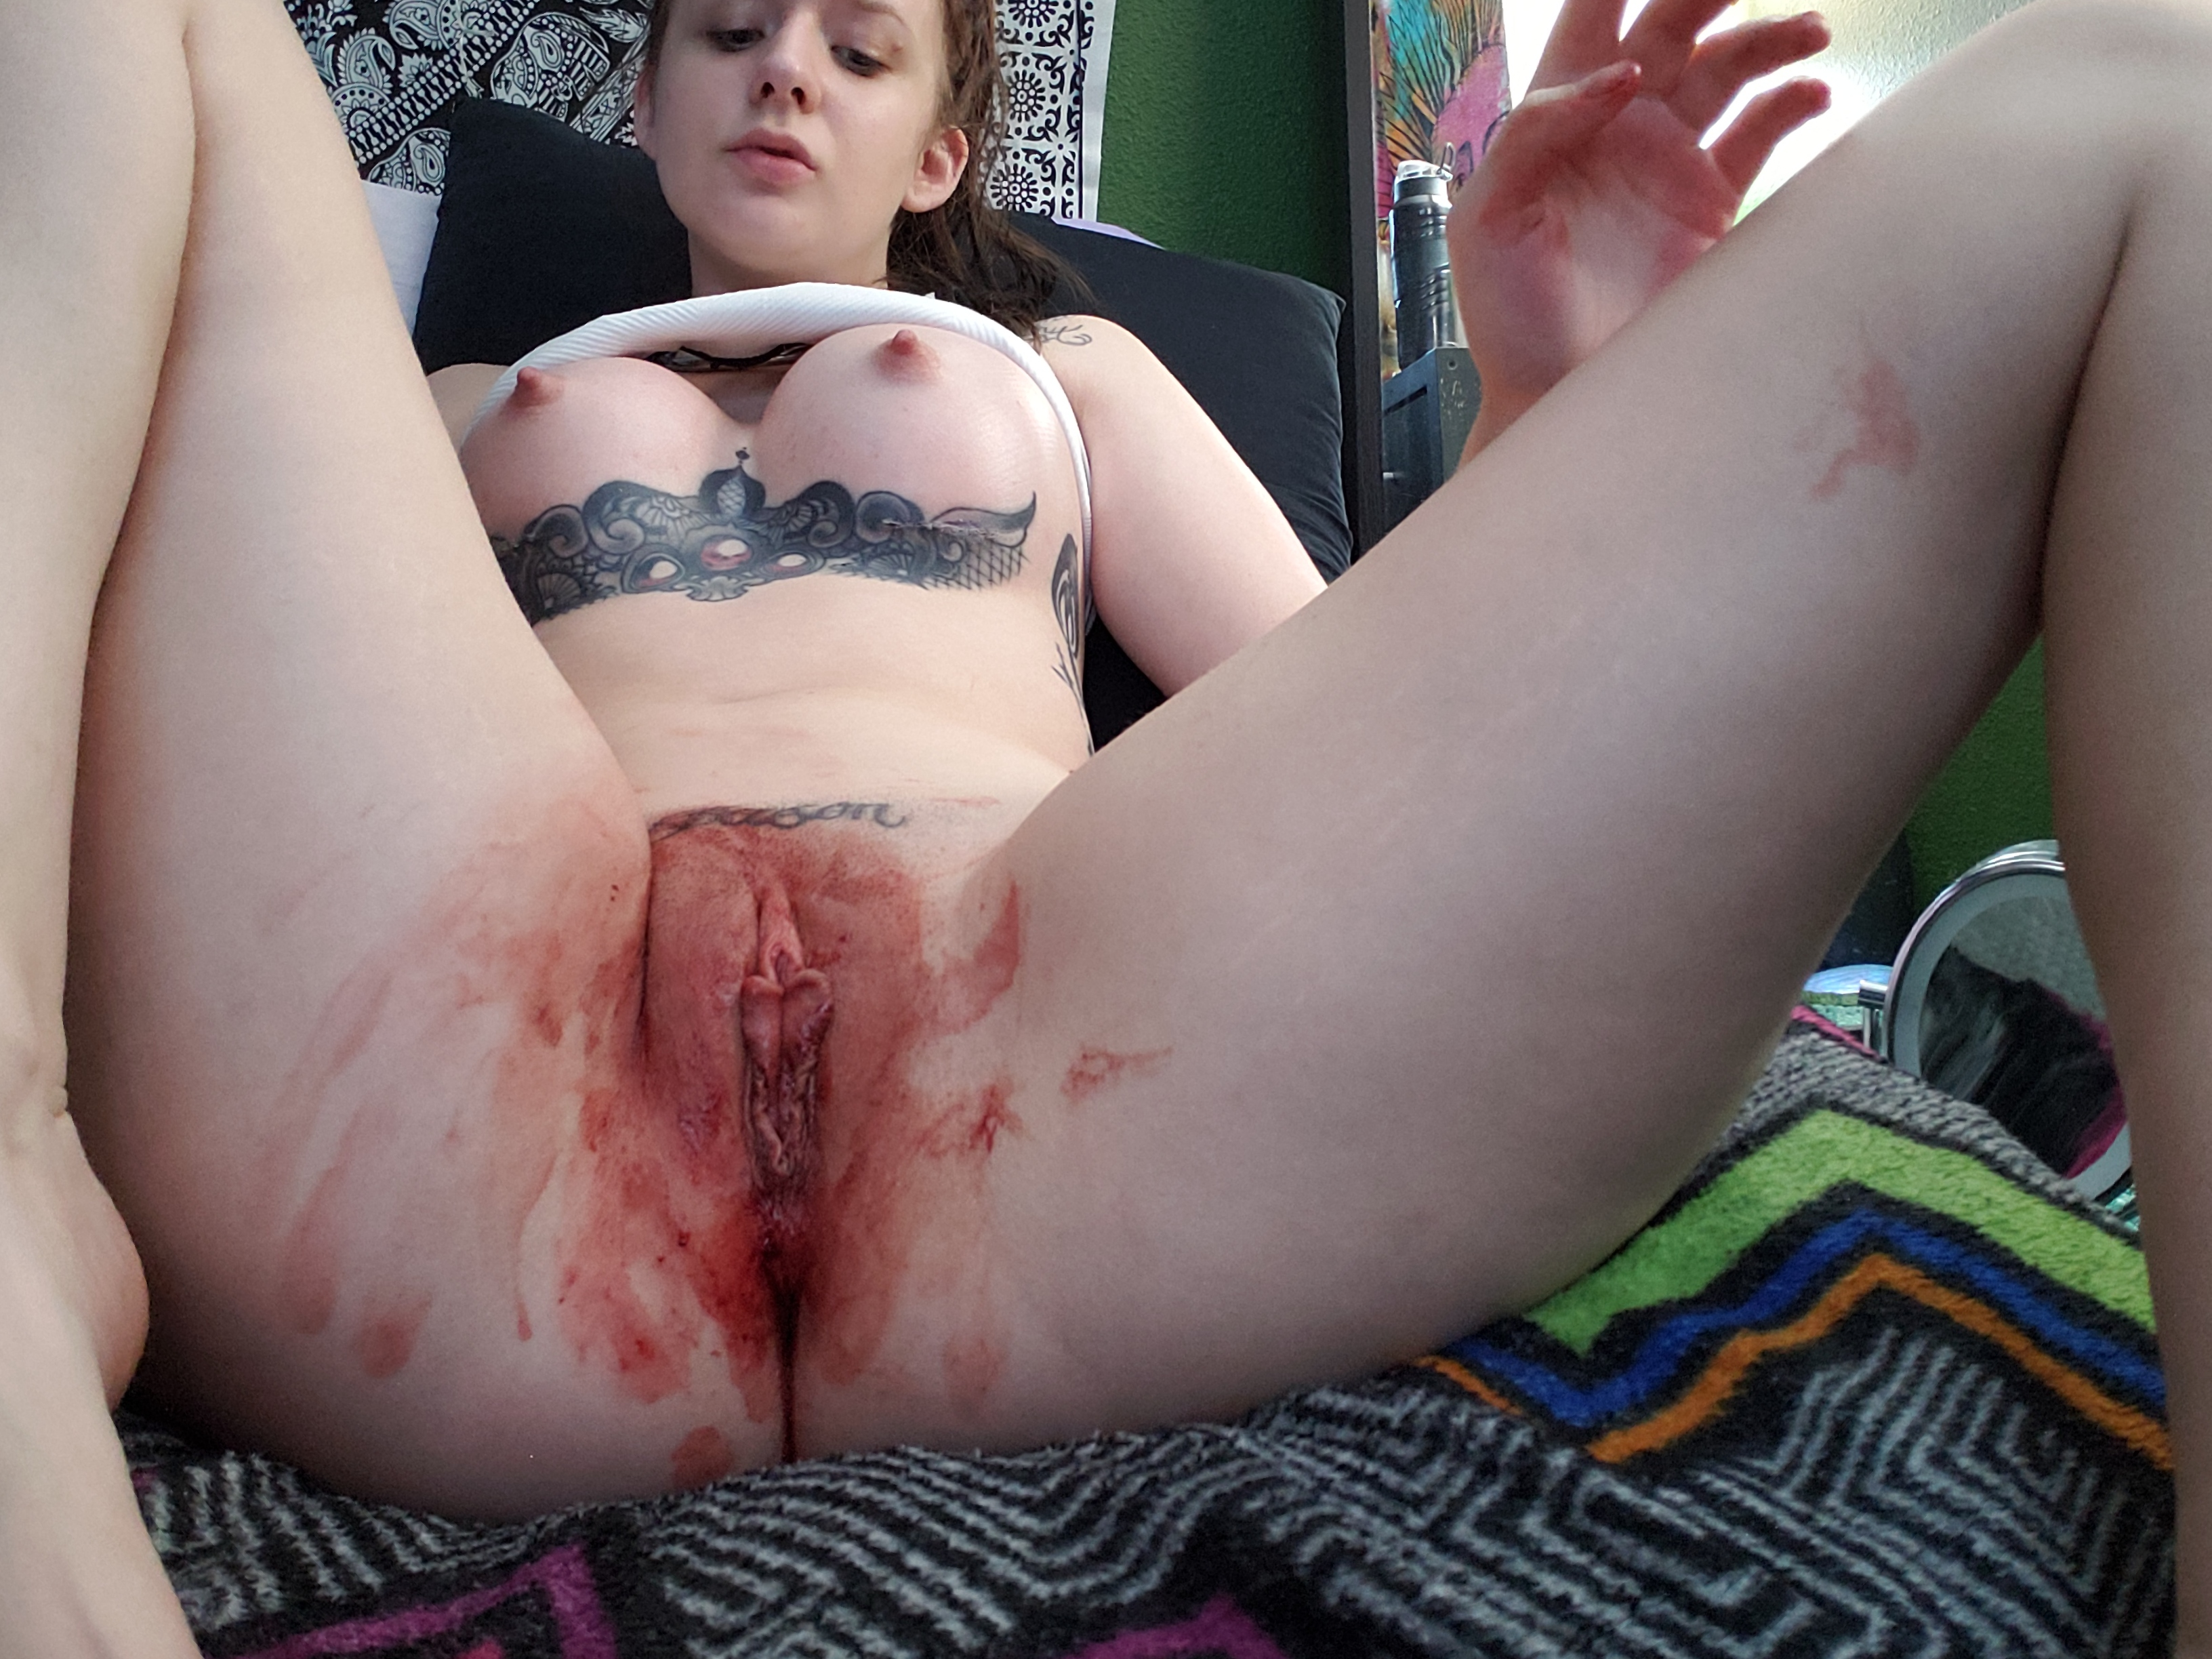 Girl licks bloody pussy, best sex video websites